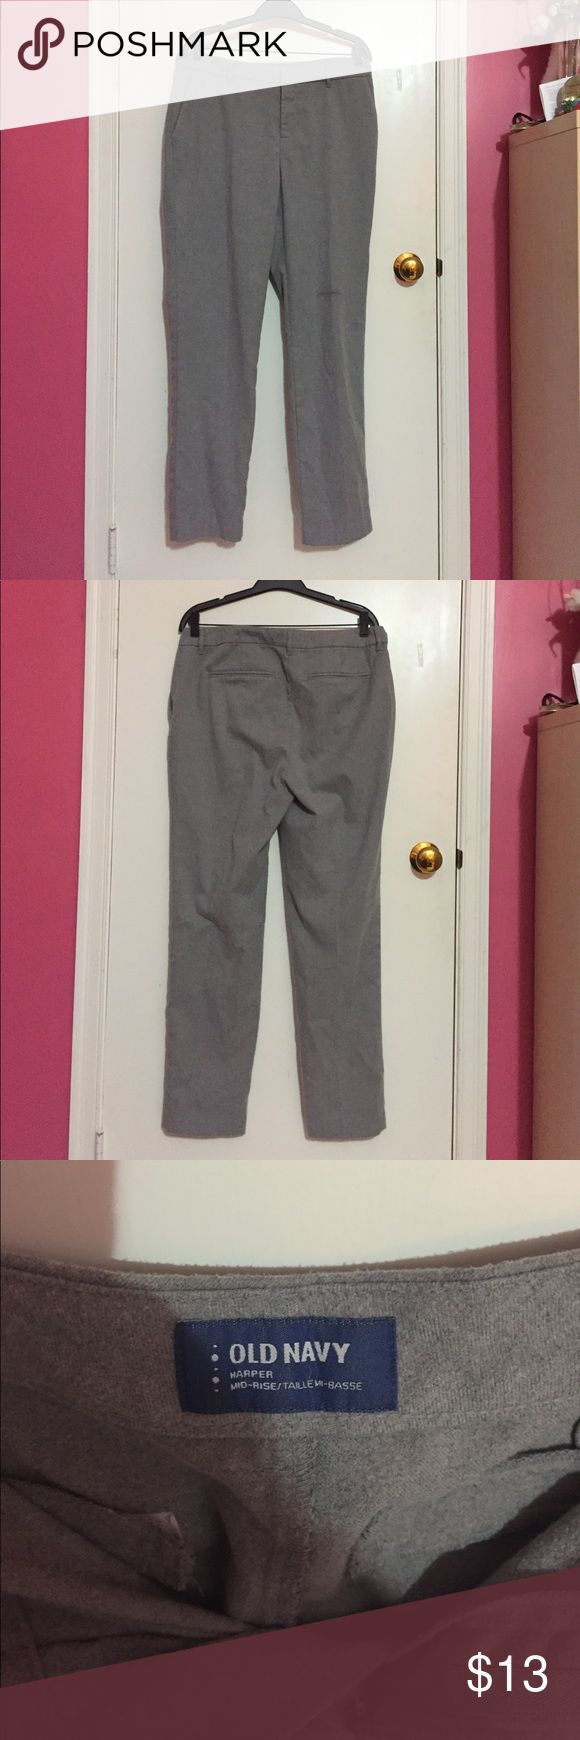 Gray Old Navy cropped pants, size 8 (tall) Cropped pants that are perfect for work or just going out! Easy to dress up and dress down. Old Navy Pants Ankle & Cropped